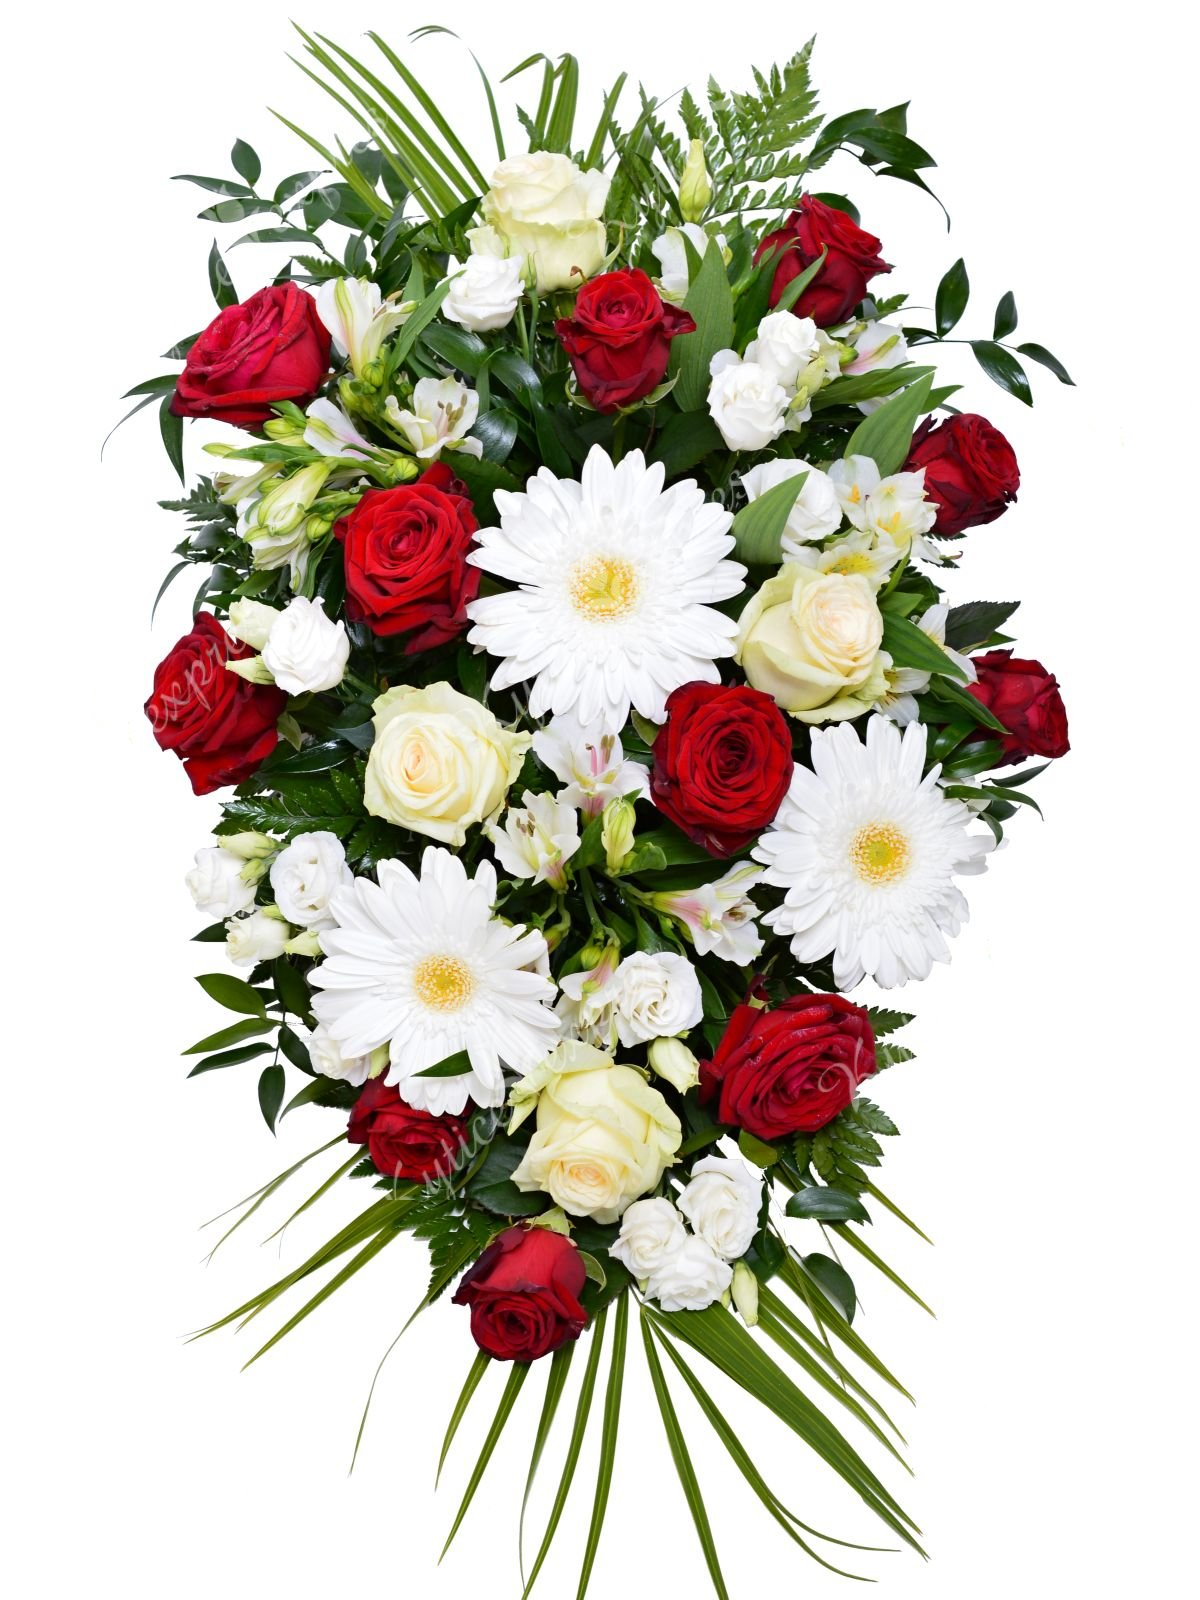 Funeral bouquet 25 kytica expres discount 390 on your next purchase funeral bouquet delivery of flowers izmirmasajfo